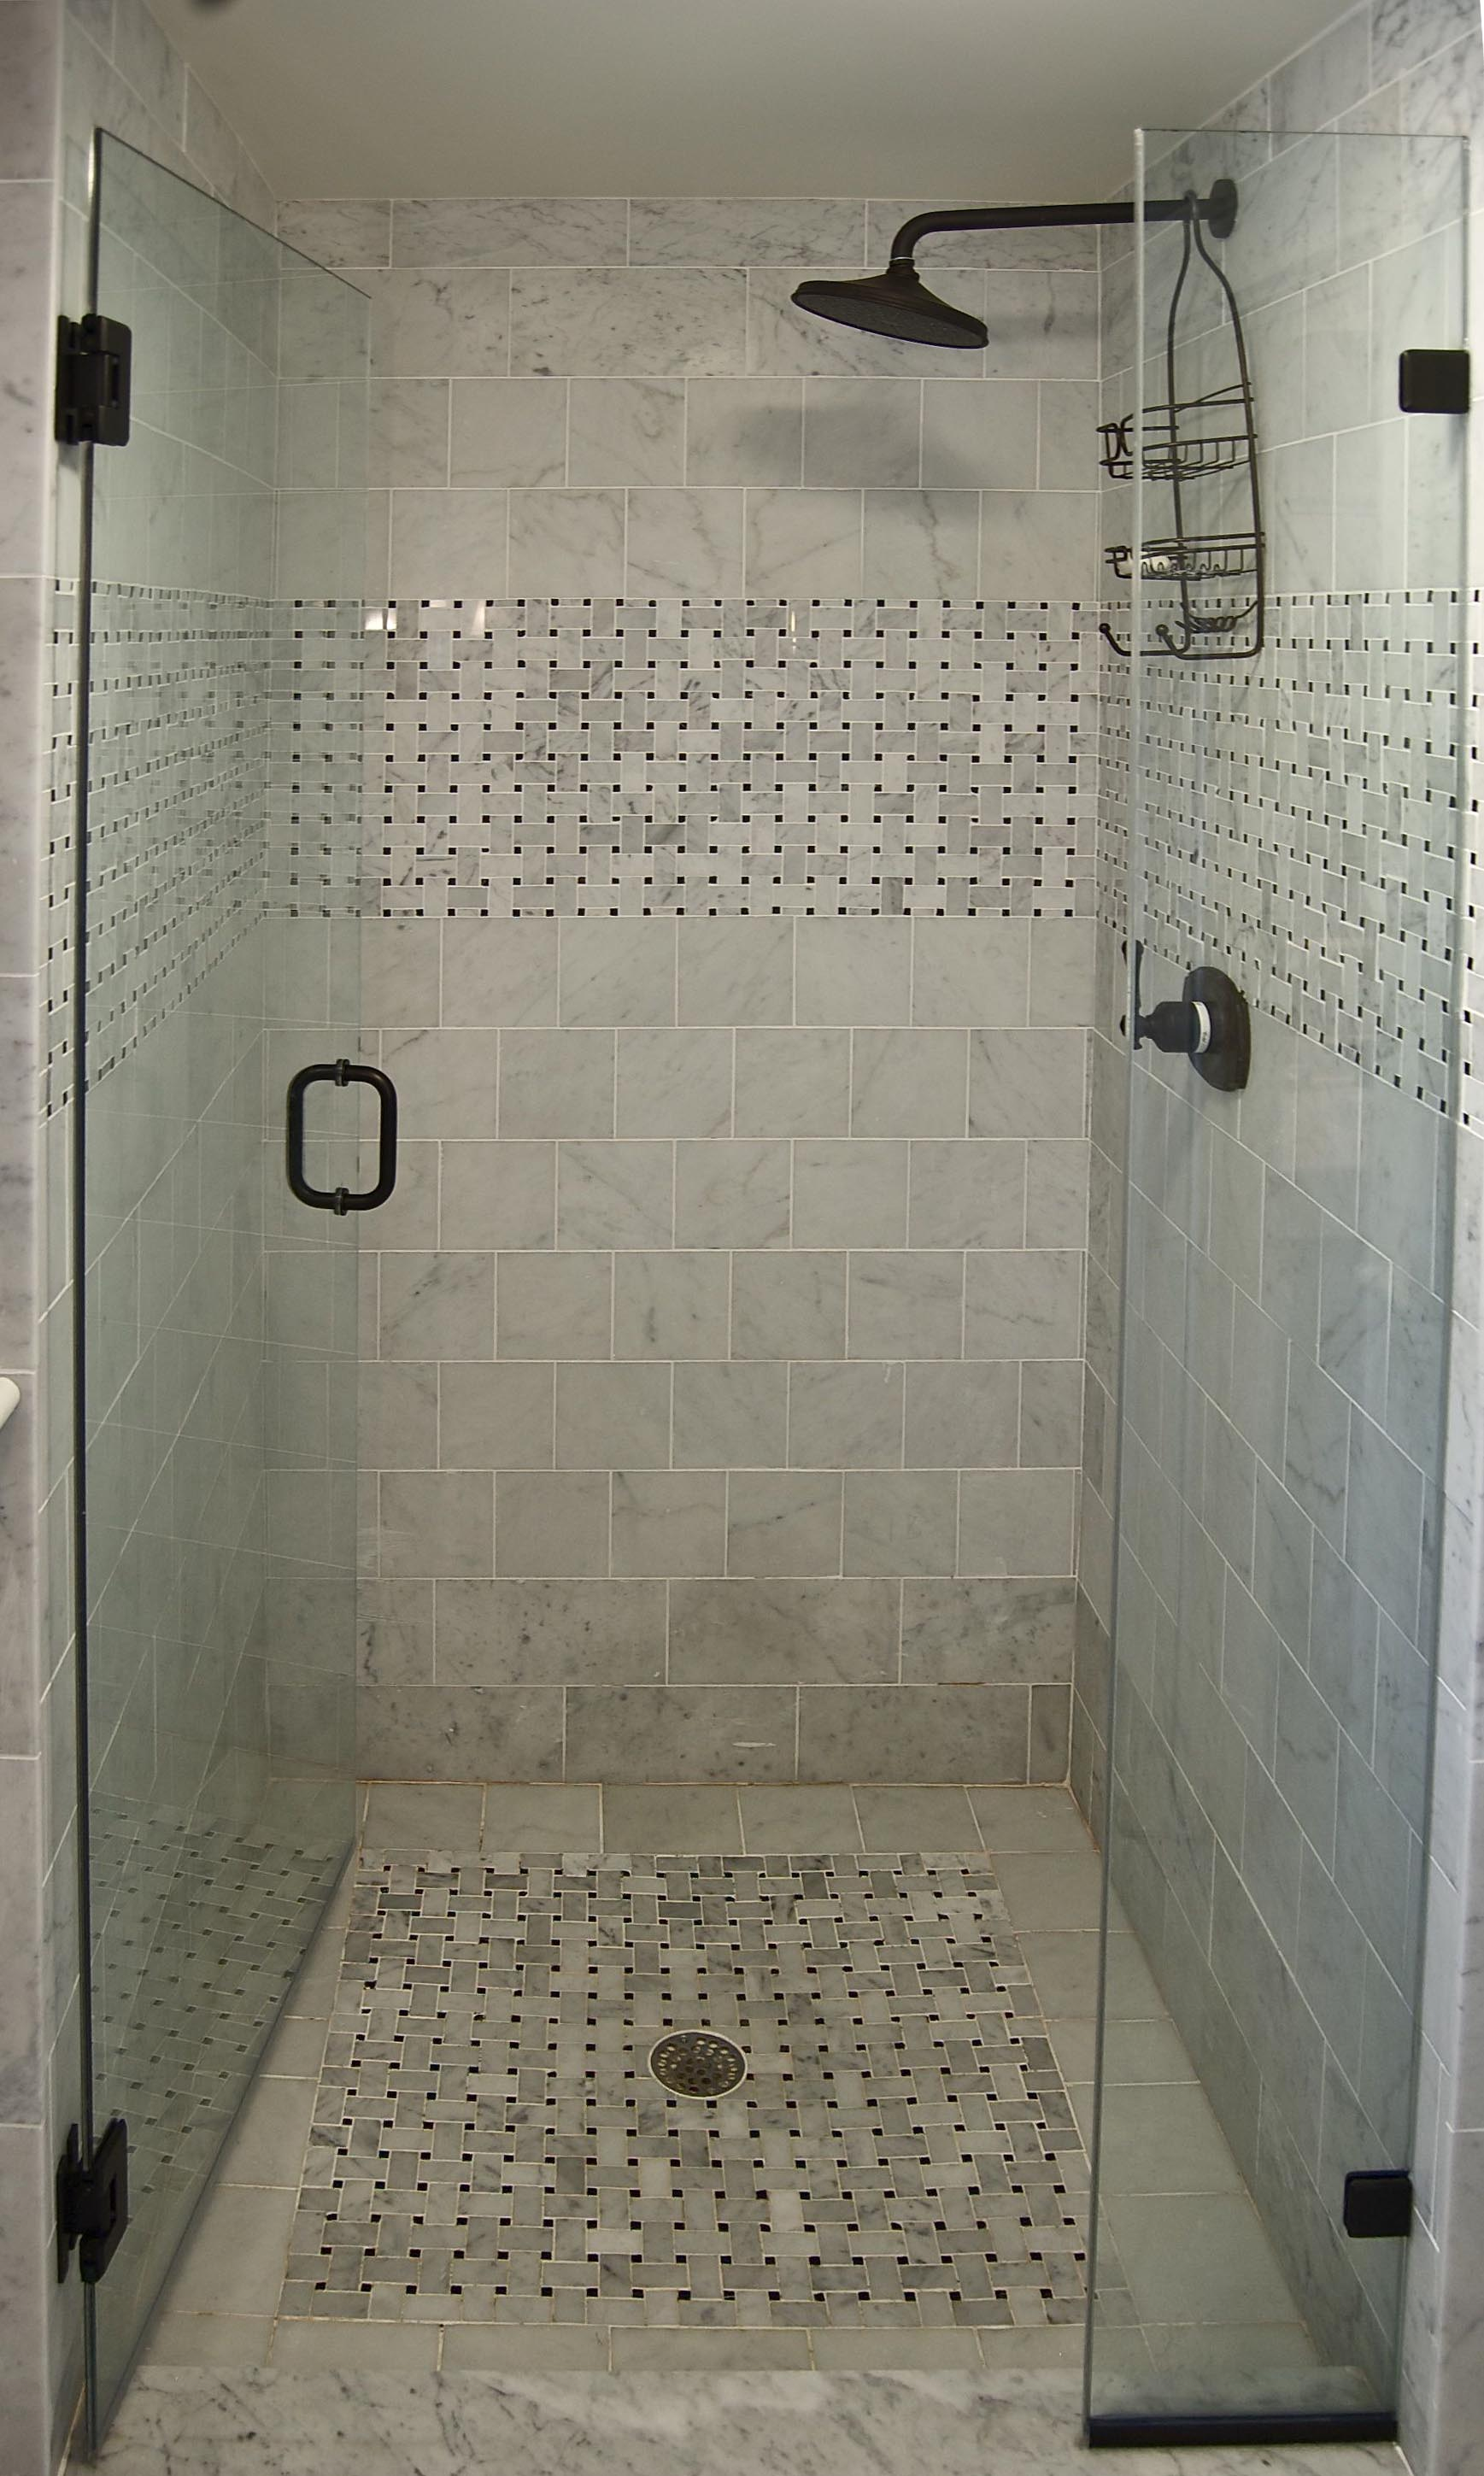 images of tiled showers.  11 30 Cool Pictures Of Tiled Showers With Glass Doors Esign